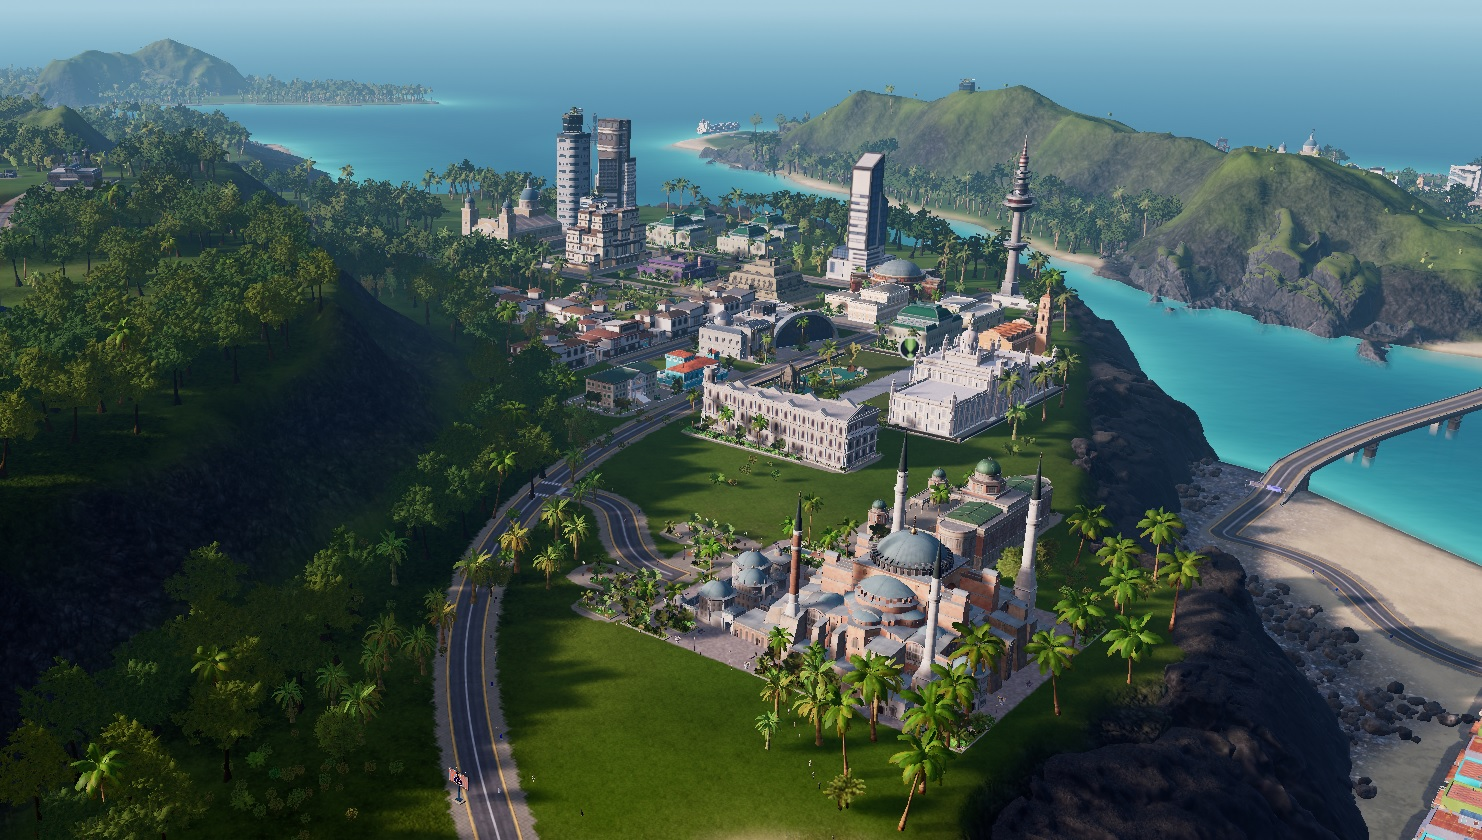 Tropico 6 Cheats For Infinite Money, Research Points And